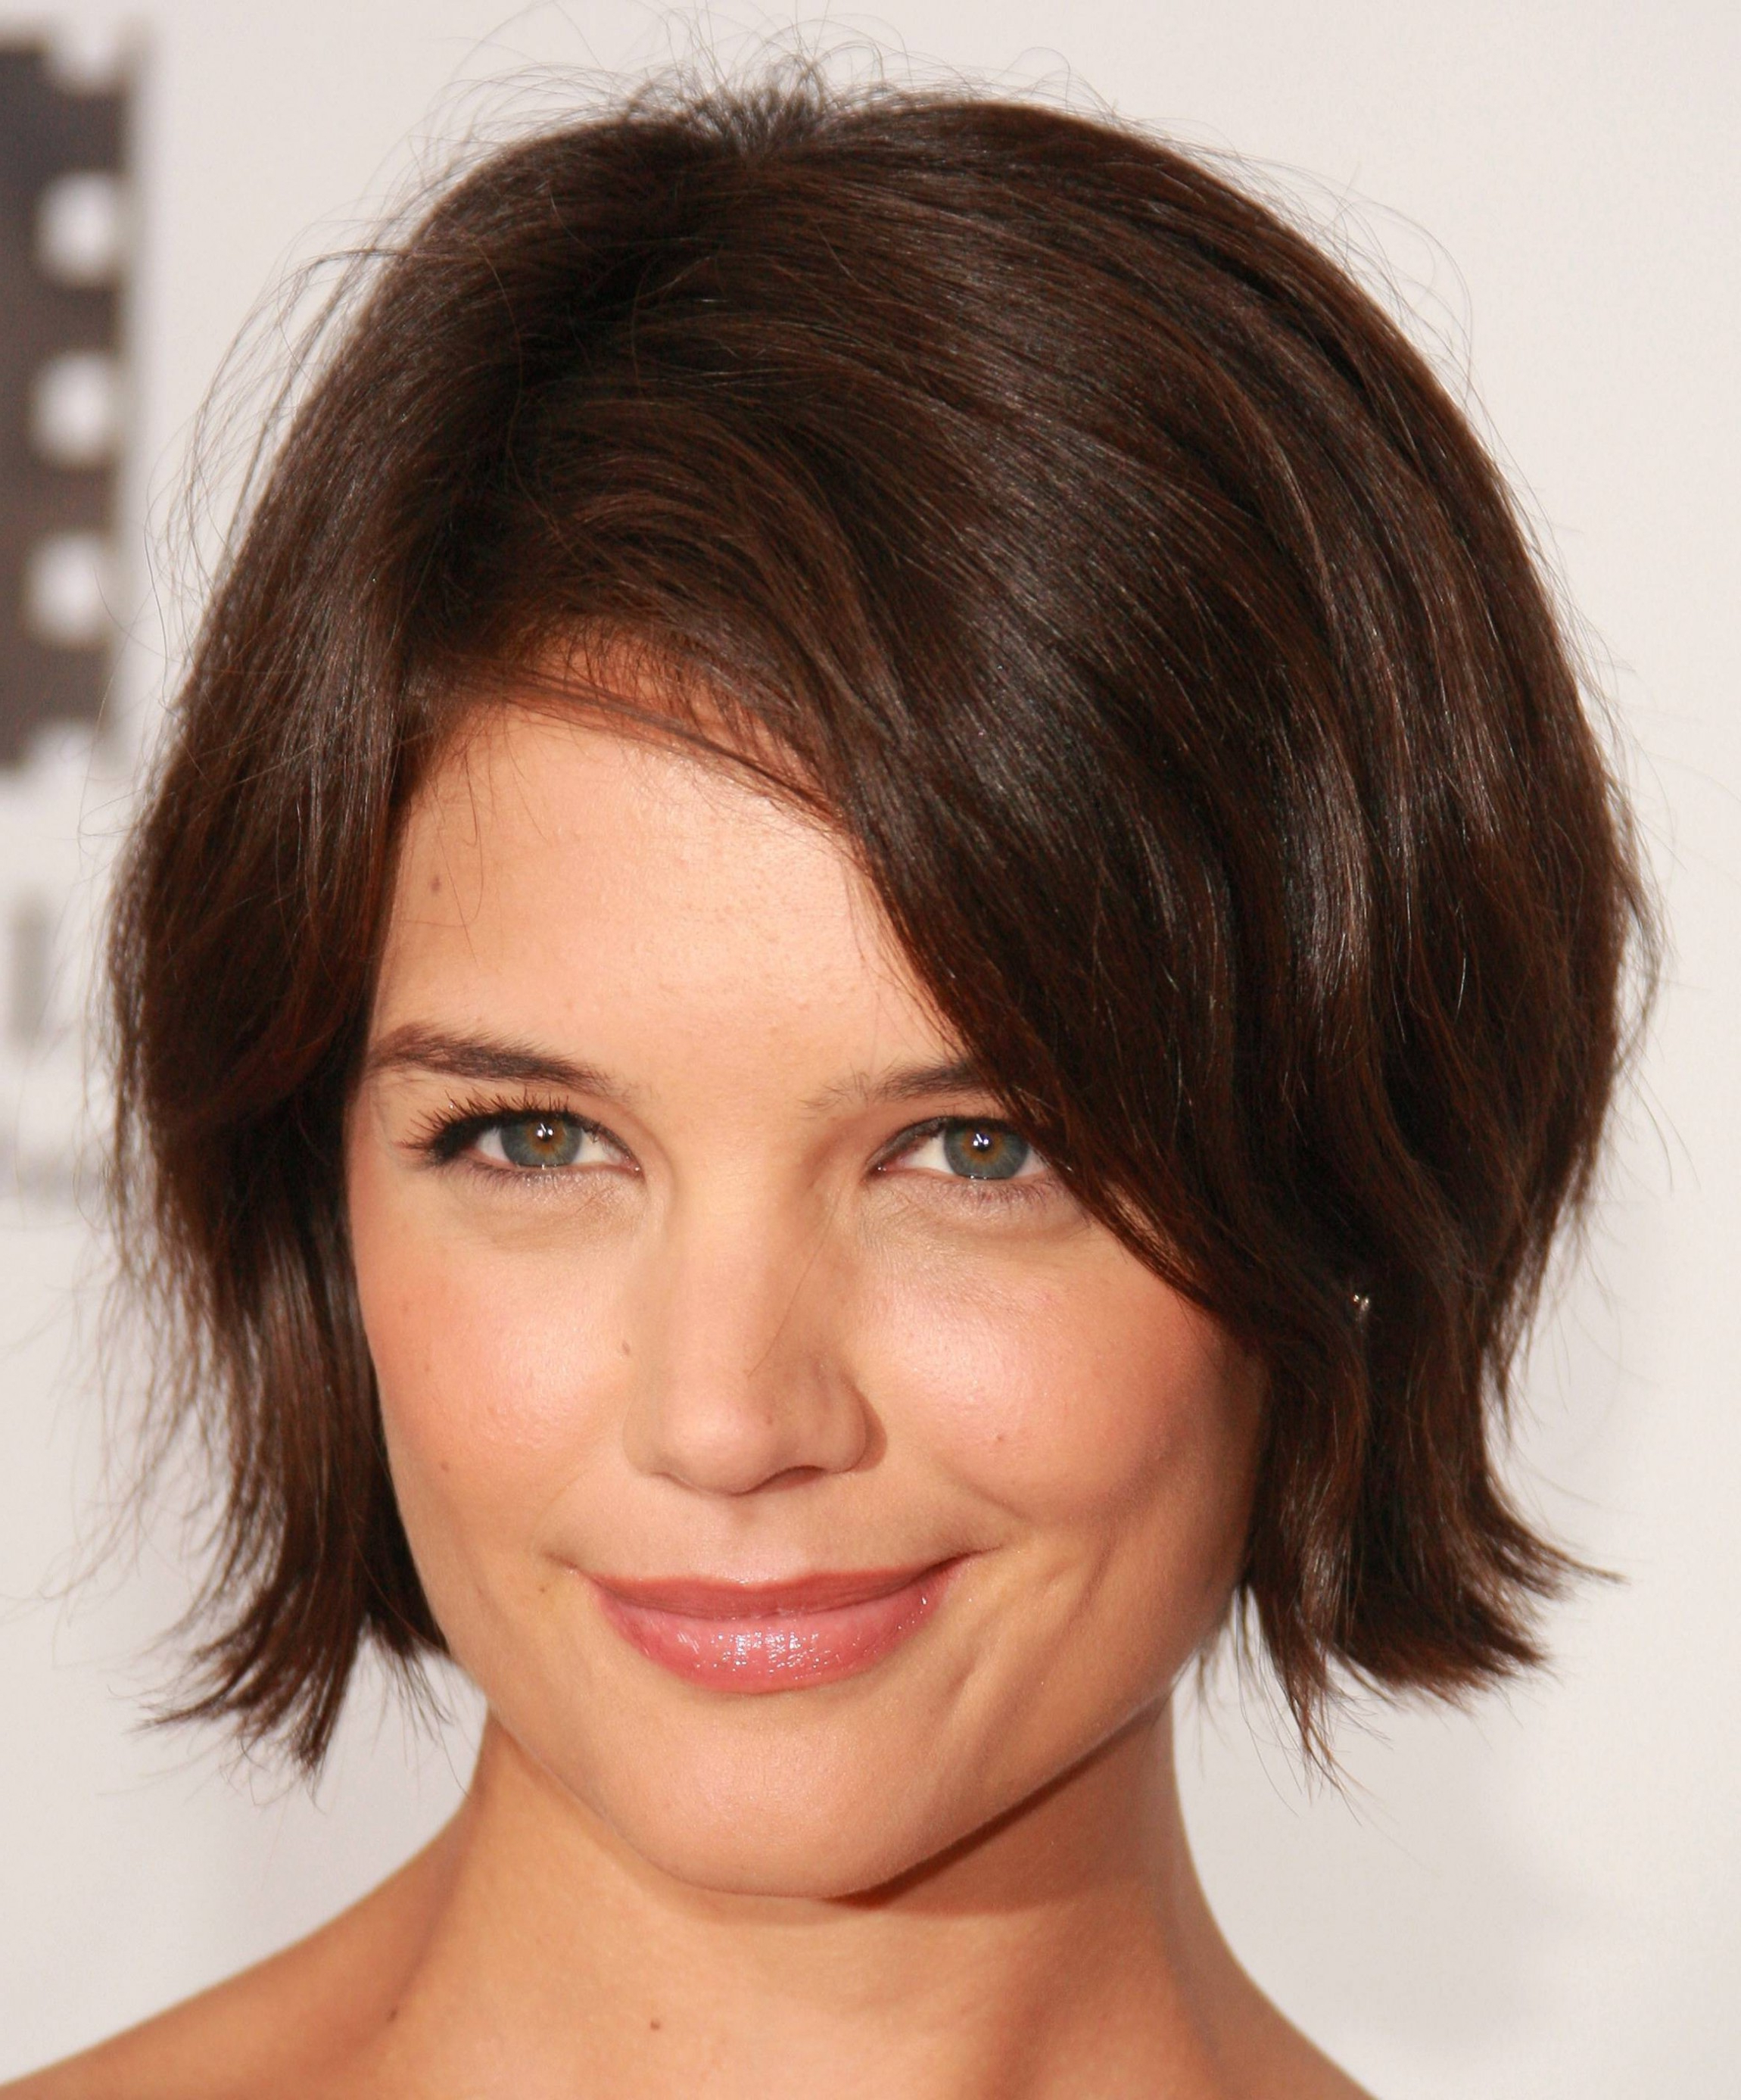 Best Short Hairstyles – Cute Hair Cut Guide For Round Face Shape Intended For Short Haircuts For Heavy Set Woman (View 4 of 25)